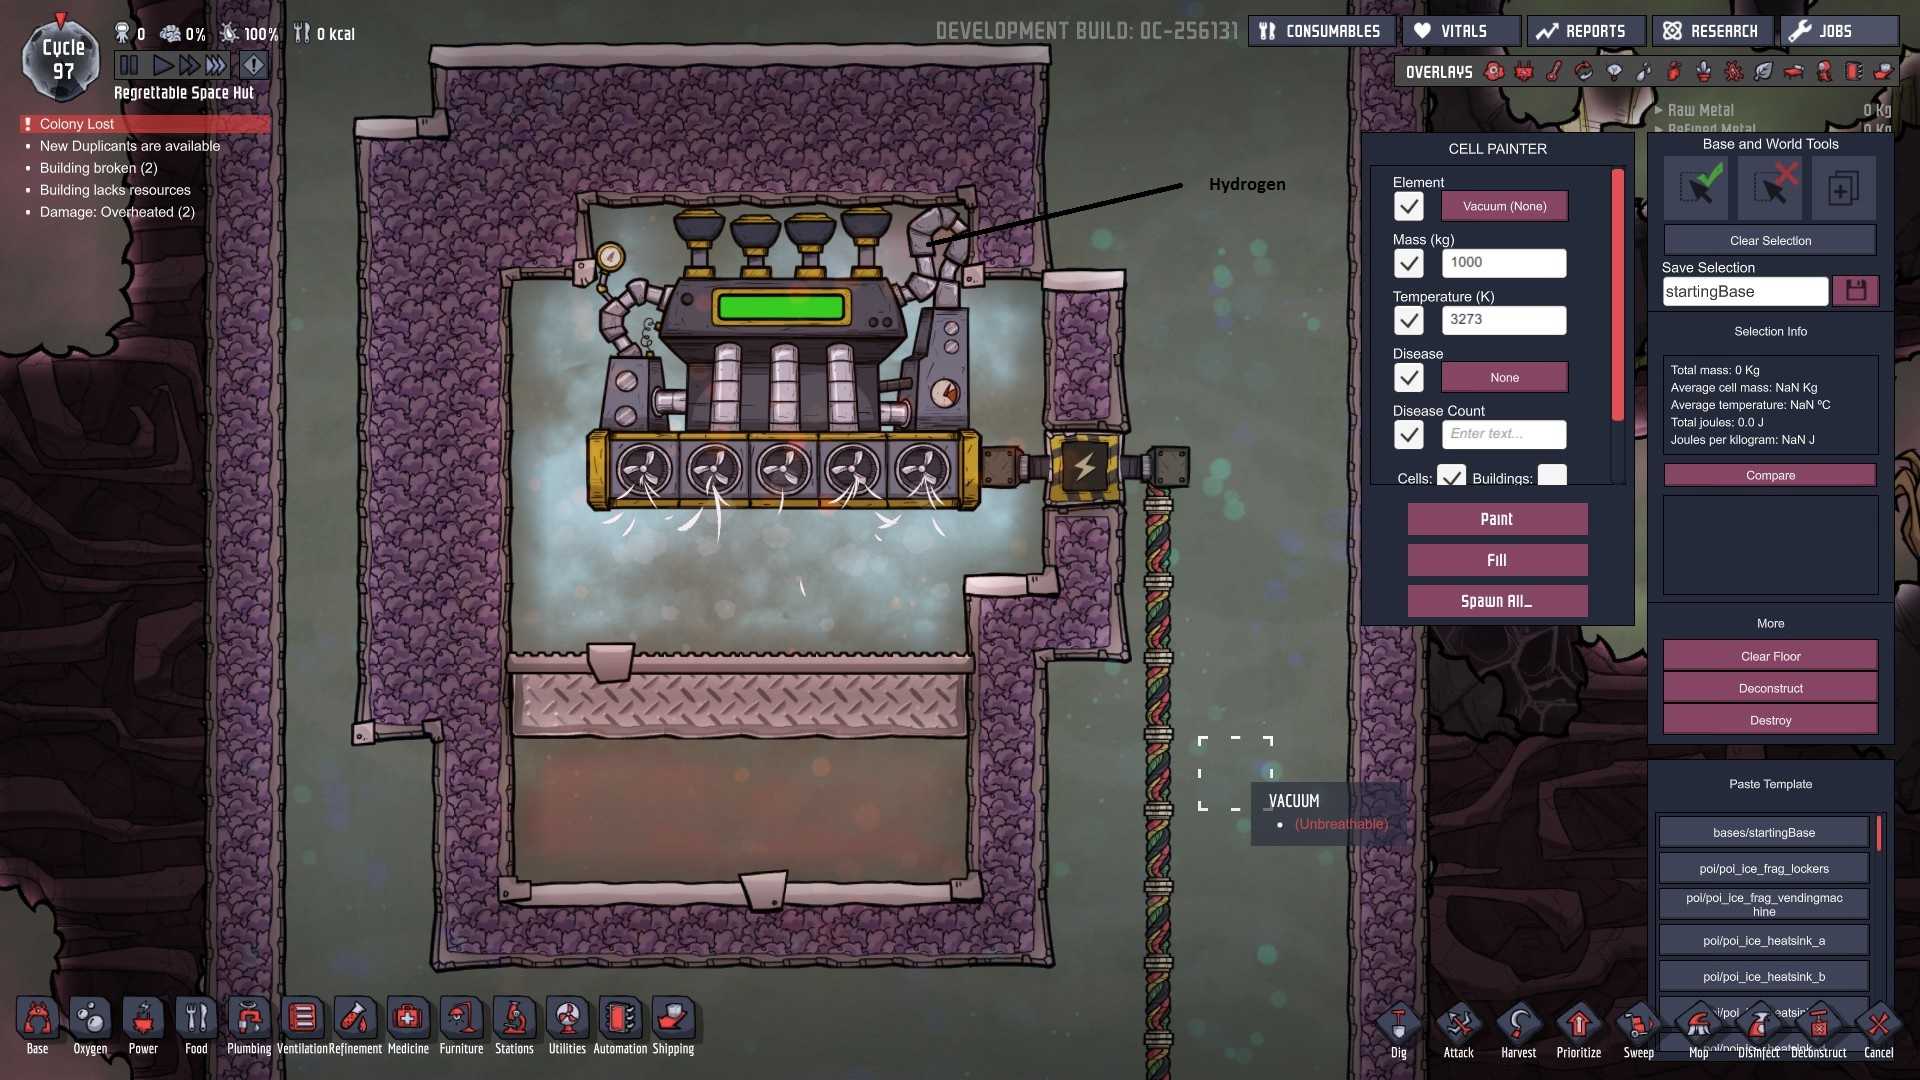 Steam Turbine cooling value? - [Oxygen Not Included] - General